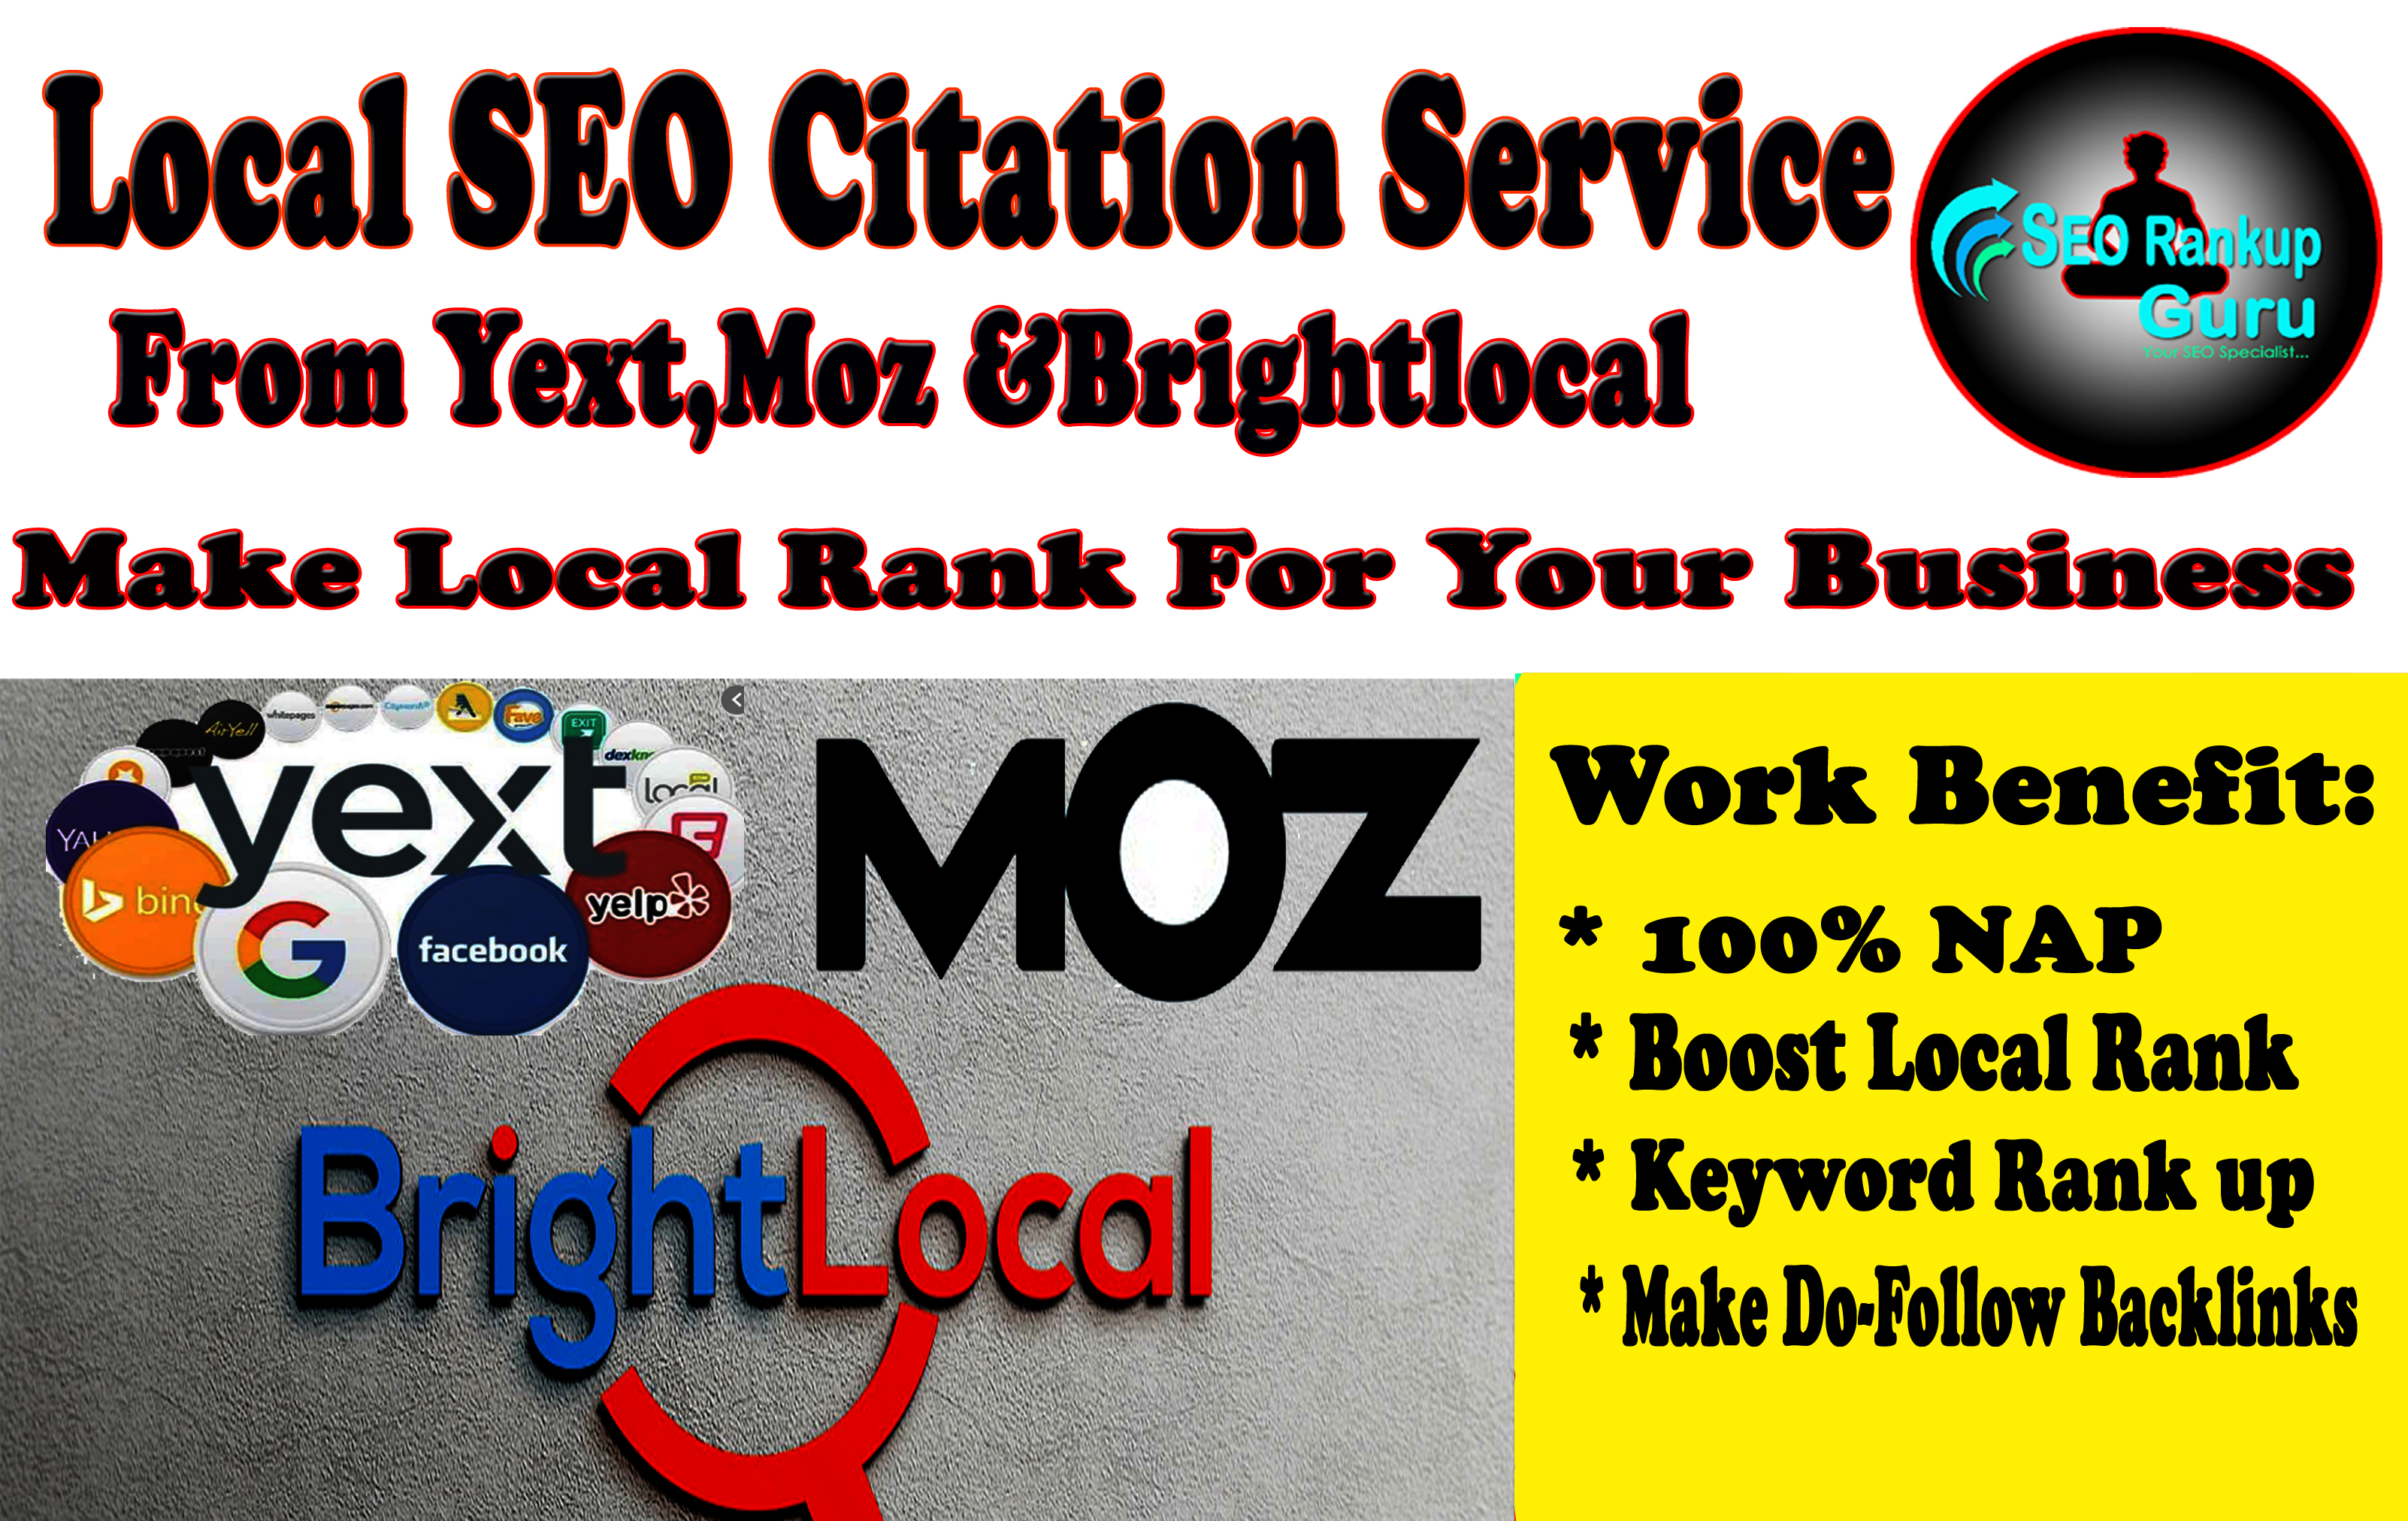 I Will Do Top 30 Local SEO Citation From Yext, Moz And Brightlocal List